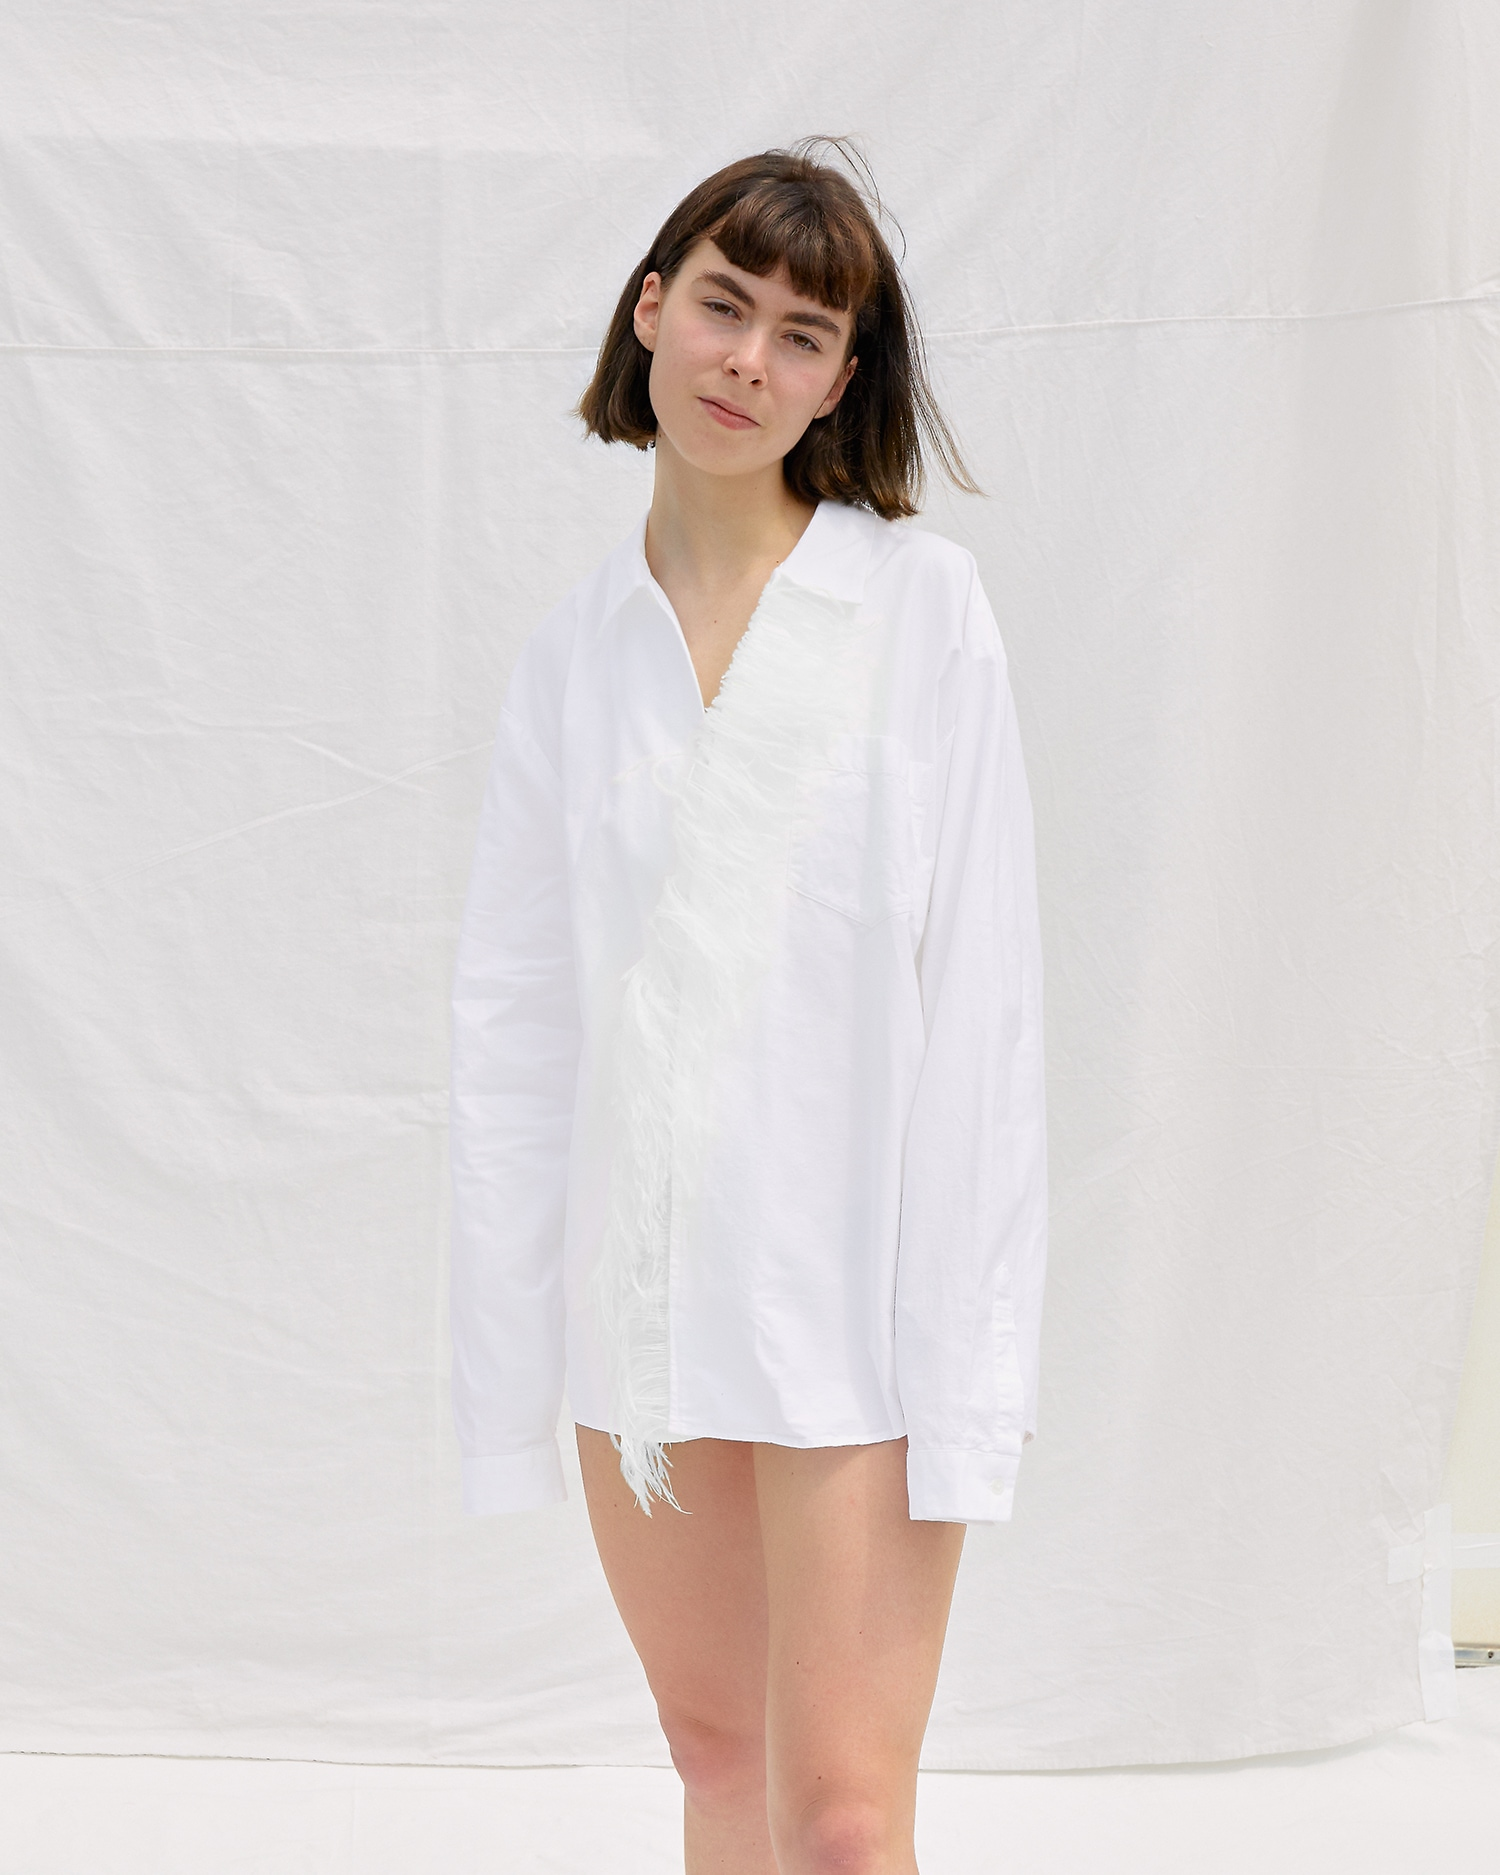 feathered-shirt-white-one-dna.jpg